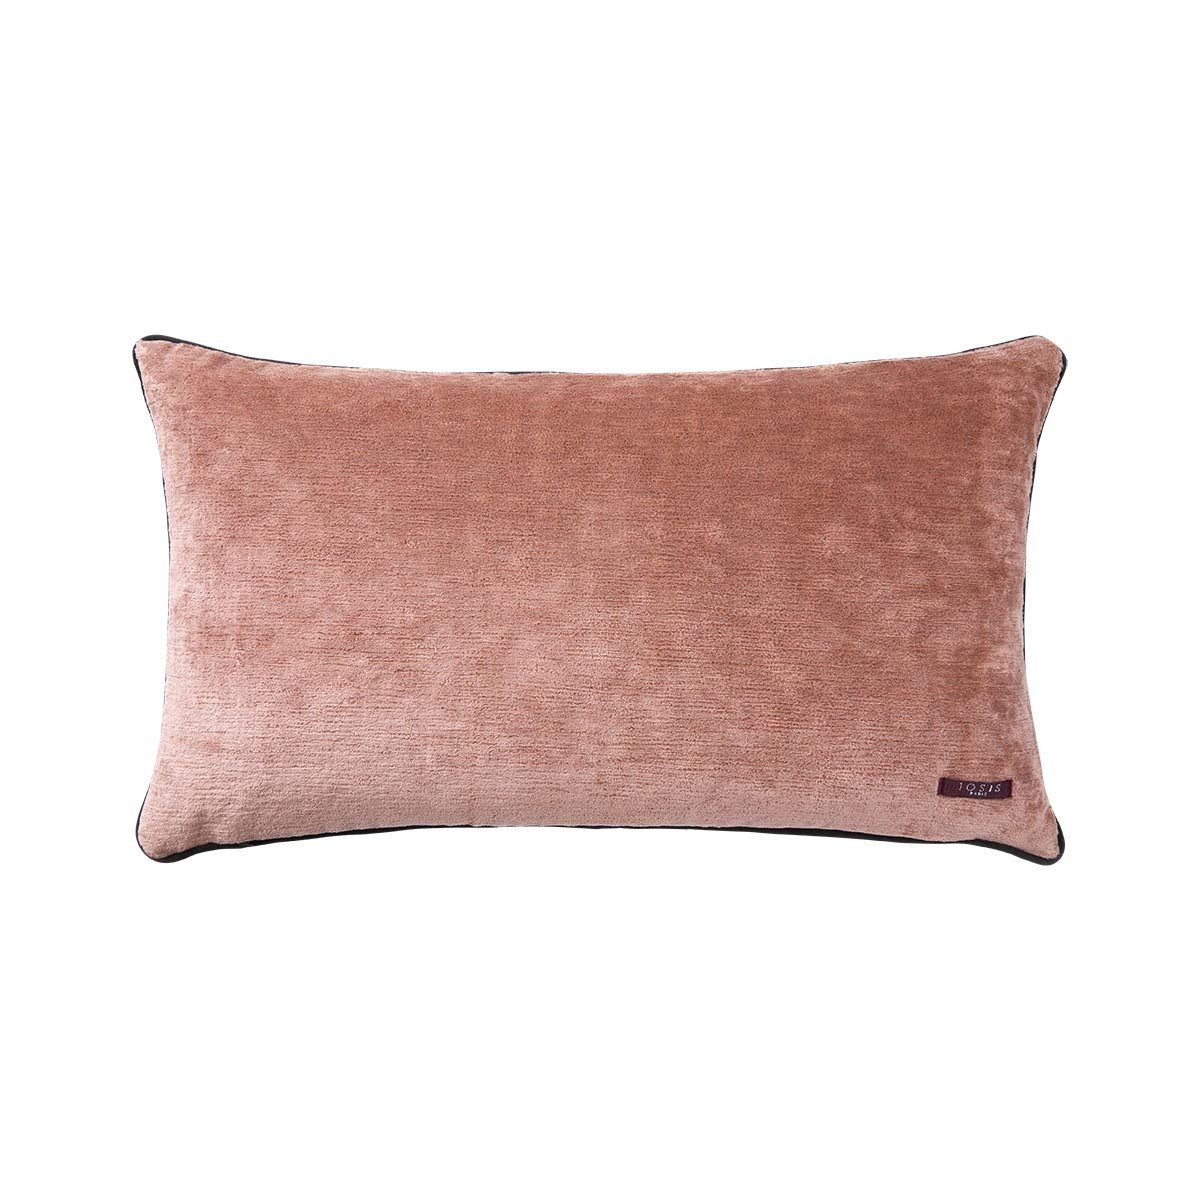 Fig Linens - Boromee Cedre Lumbar Pillow by Iosis - Linen back